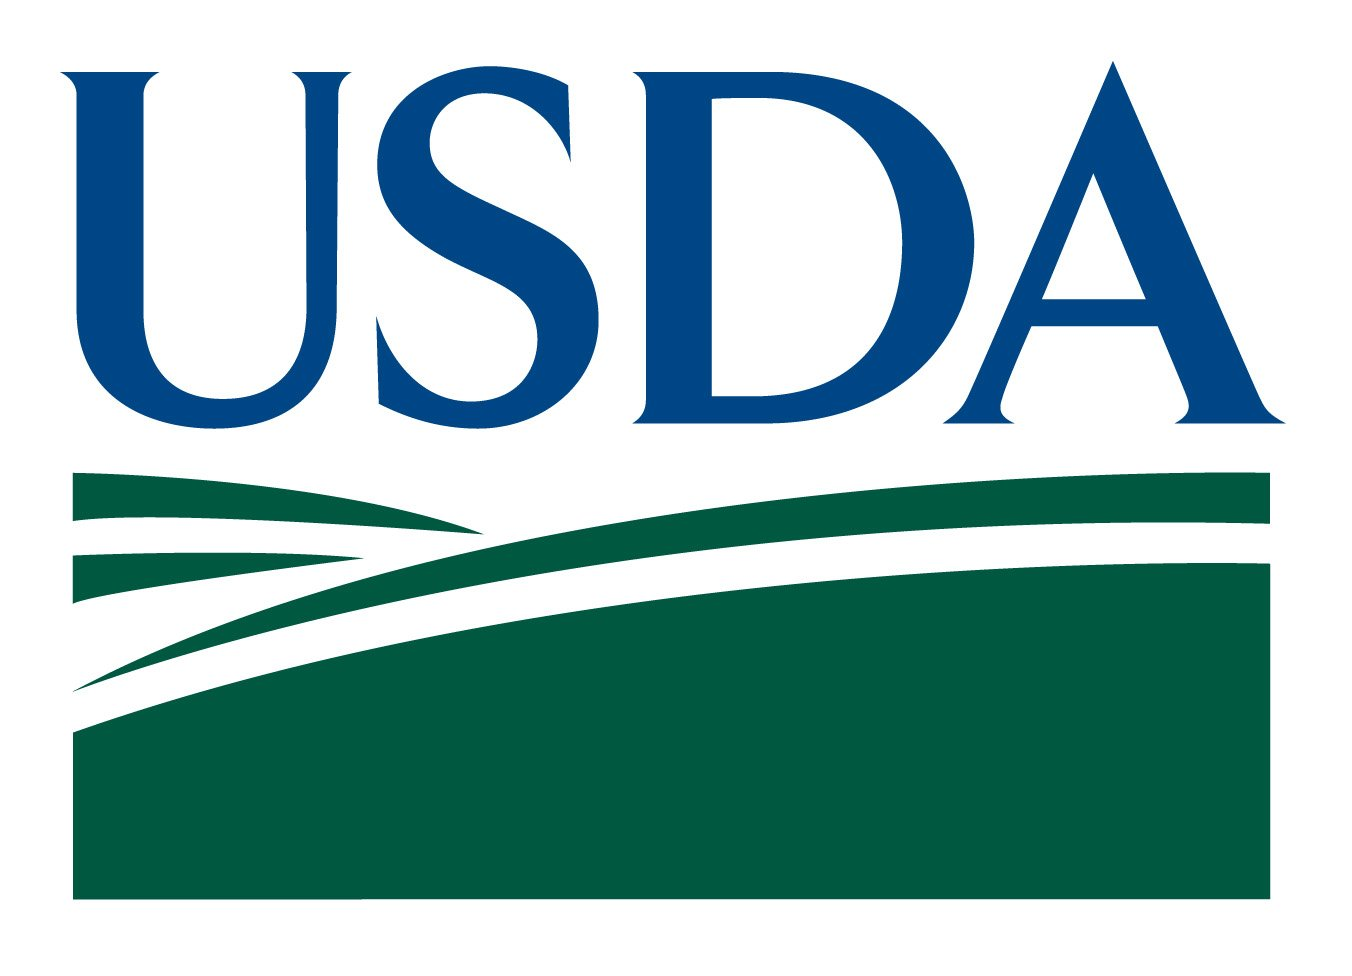 The USDA Offers REAP Grants to Help Fund Solar for Farmers and Rural Small Businesses